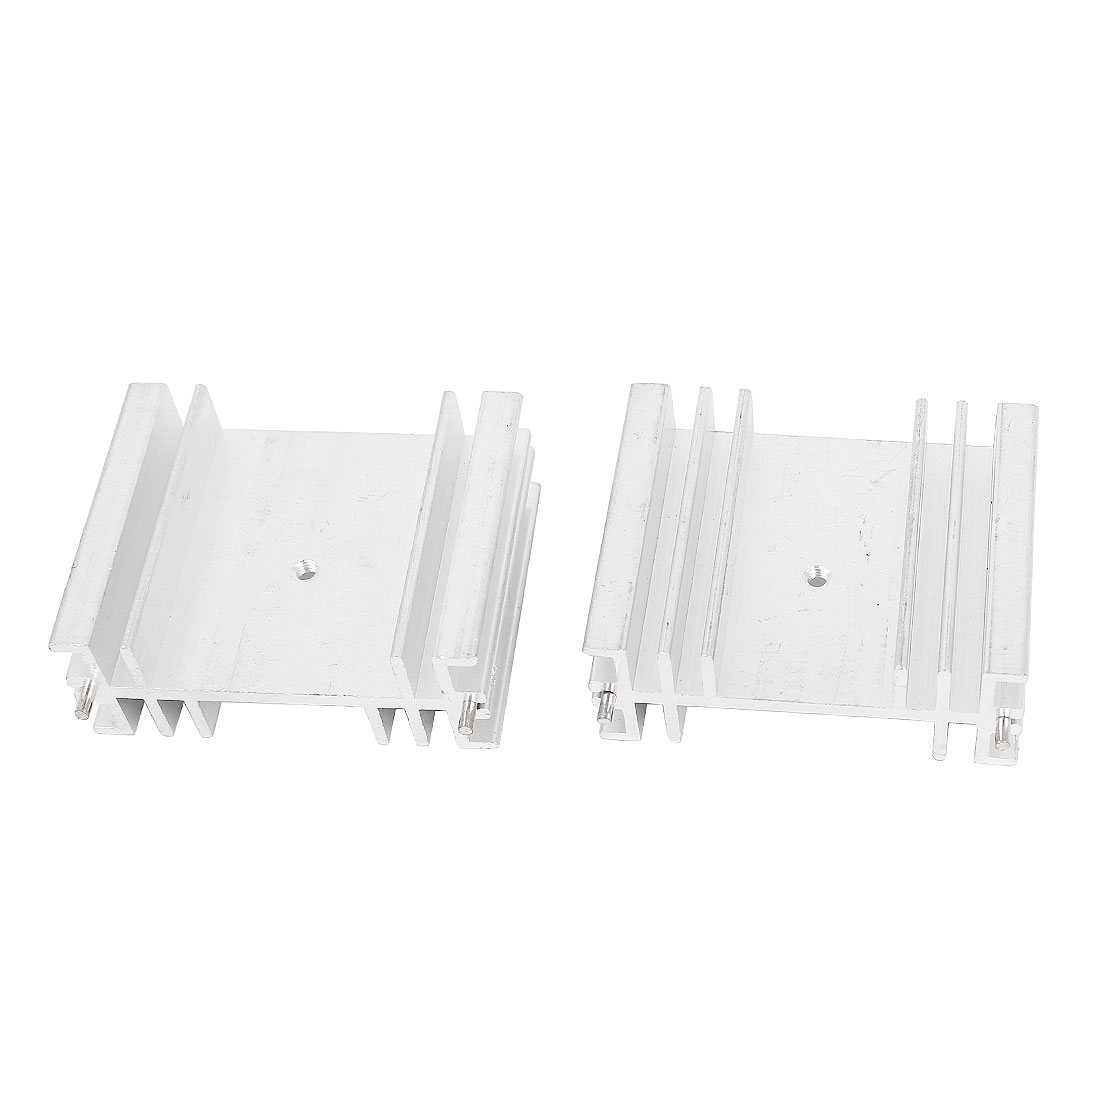 2PCS 50mmx40mmx20mm Aluminum Heat Sink Heatsink for LED Power IC Transistor